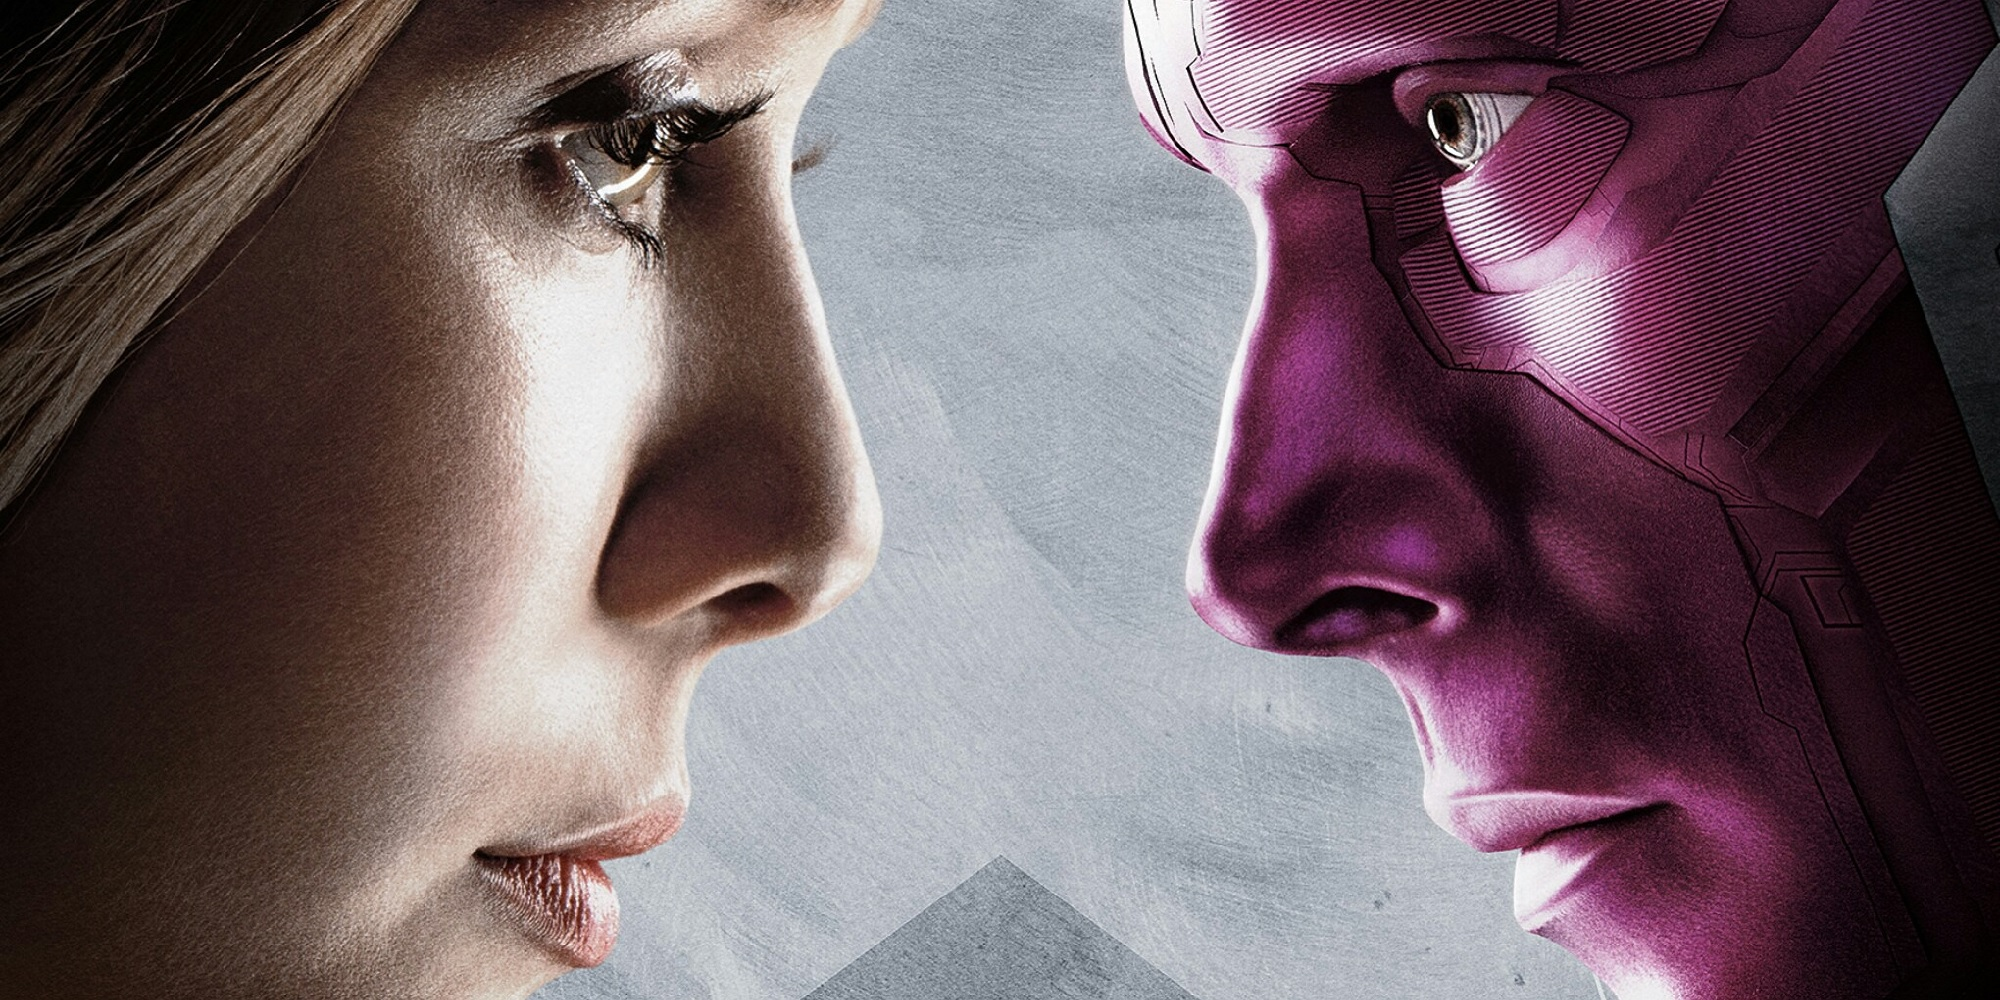 Captain America Civil War - Vision and Scarlet Witch promo